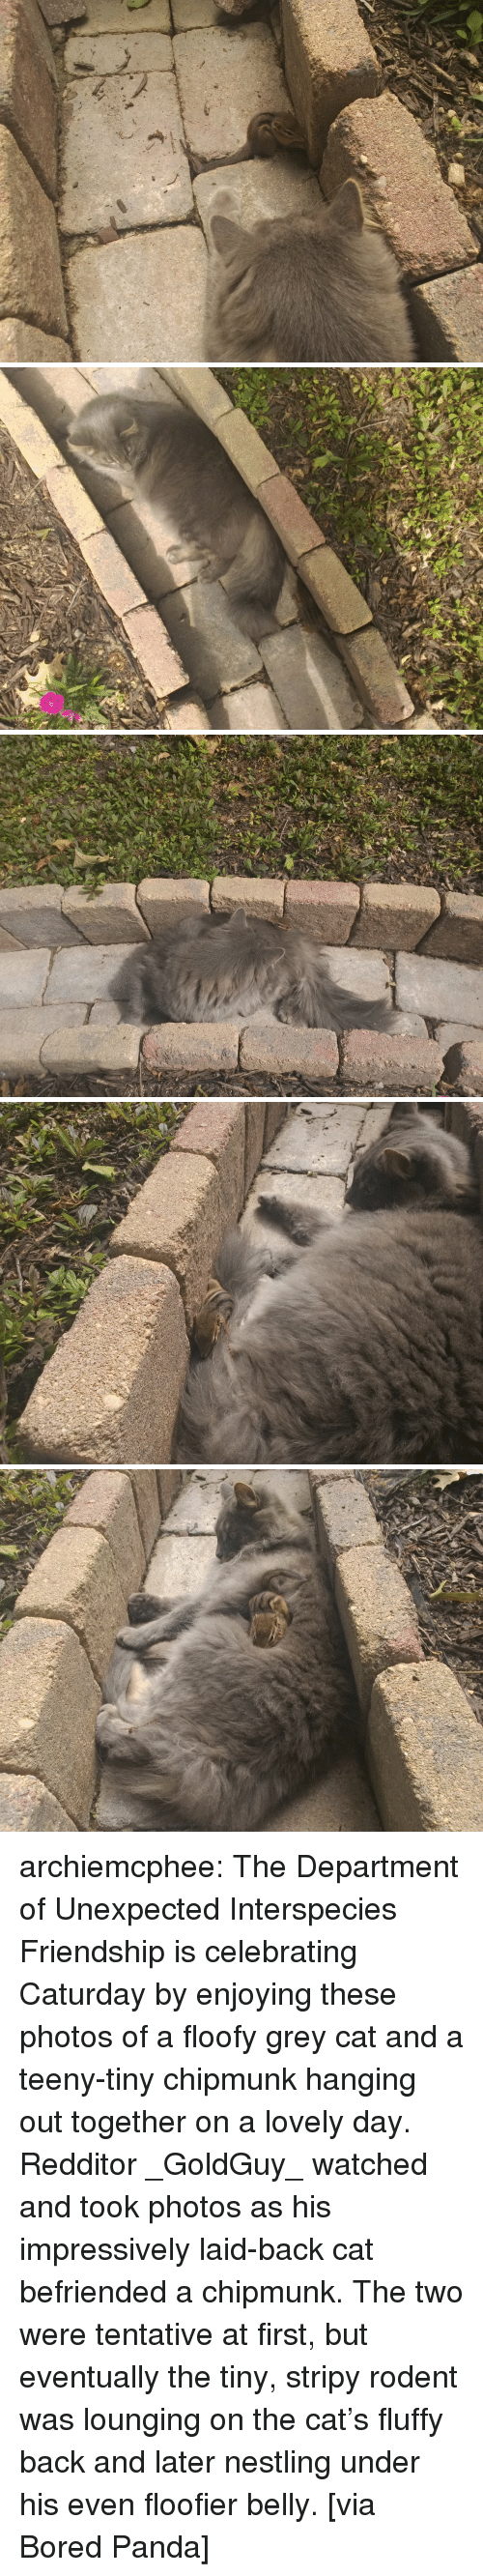 Aww, Bored, and Caturday: archiemcphee: The Department of Unexpected Interspecies Friendship is celebrating Caturday by enjoying these photos of a floofy grey cat and a teeny-tiny chipmunk hanging out together on a lovely day. Redditor _GoldGuy_ watched and took photos as his impressively laid-back cat befriended a chipmunk. The two were tentative at first, but eventually the tiny, stripy rodent was lounging on the cat's fluffy back and later nestling under his even floofier belly. [via Bored Panda]